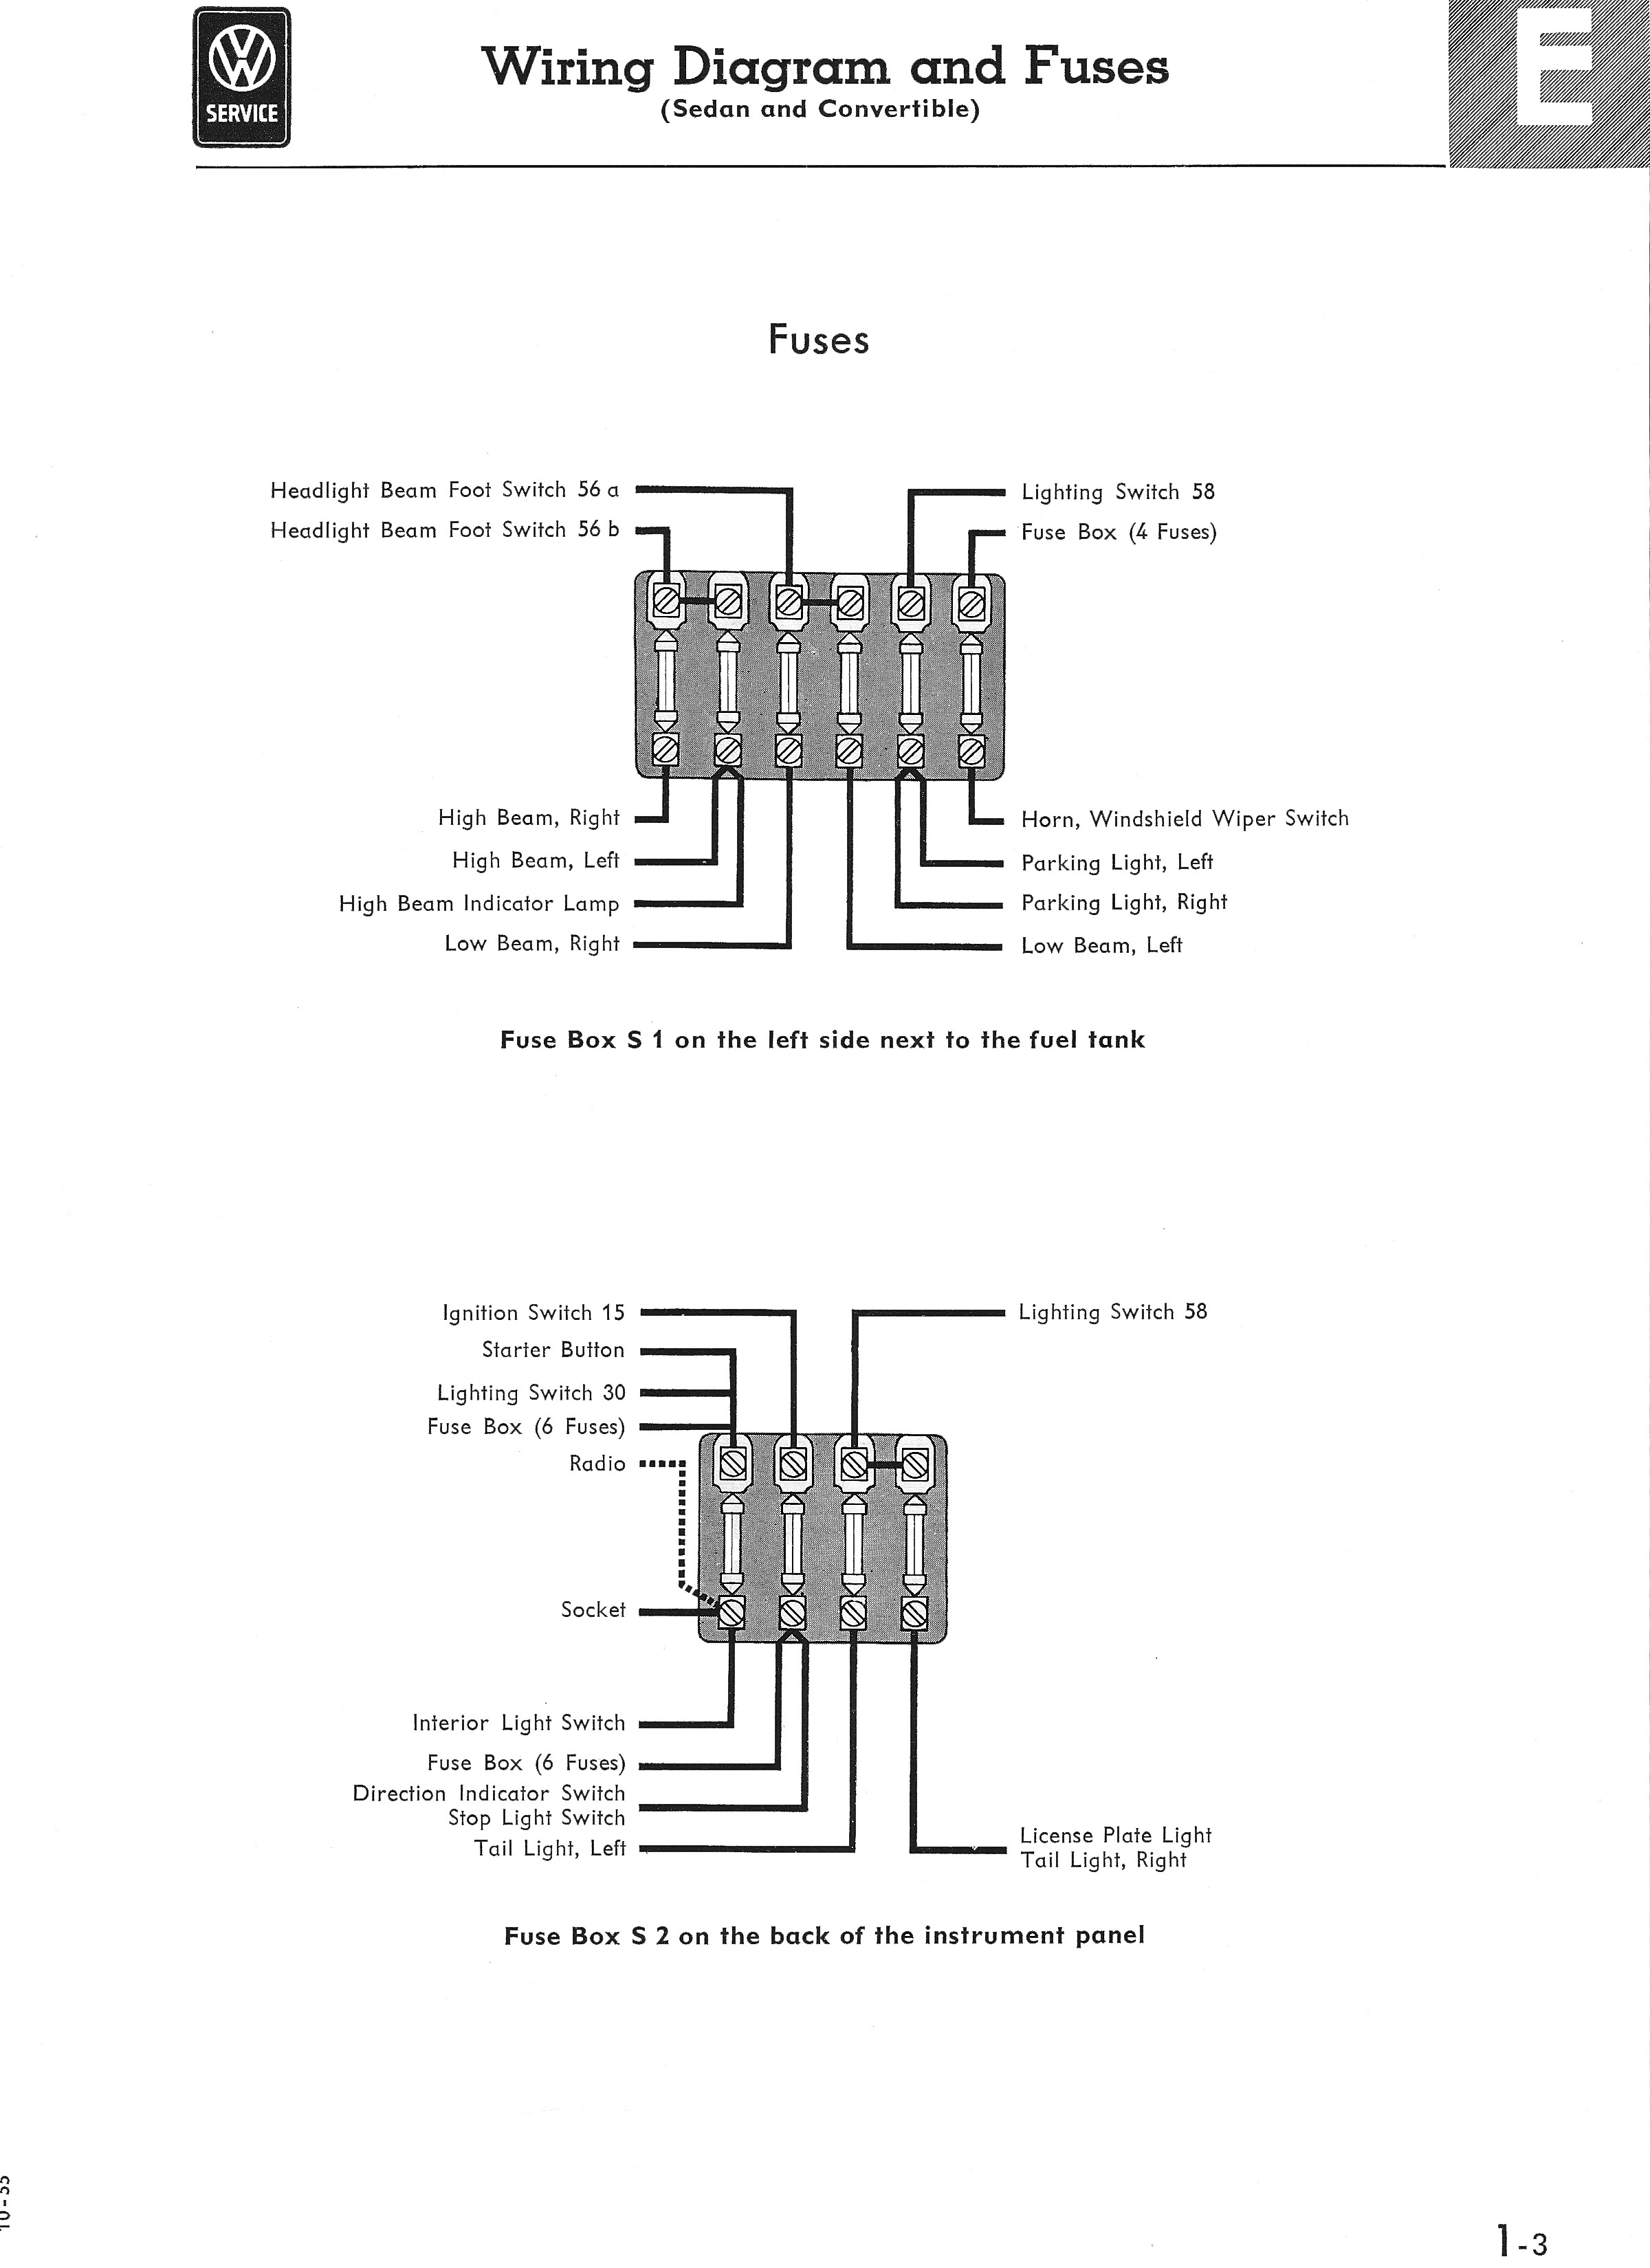 thesamba :: type 1 wiring diagrams, Wiring diagram